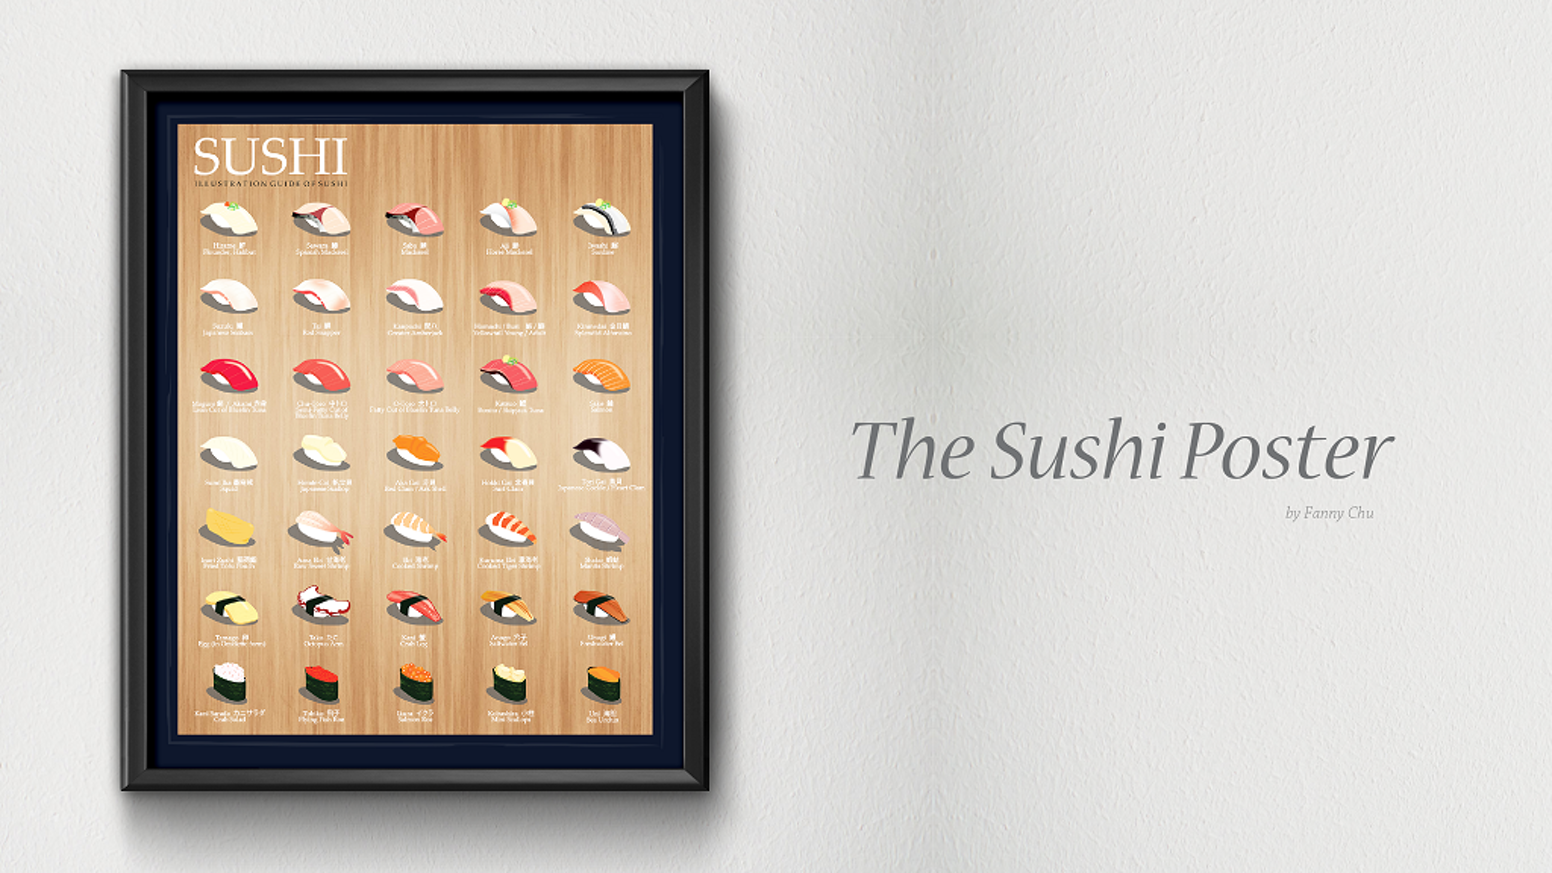 What to expect at a traditional sushi house in Japan? Know your sushi through this illustrated poster filled with 35 tasty delicacies.